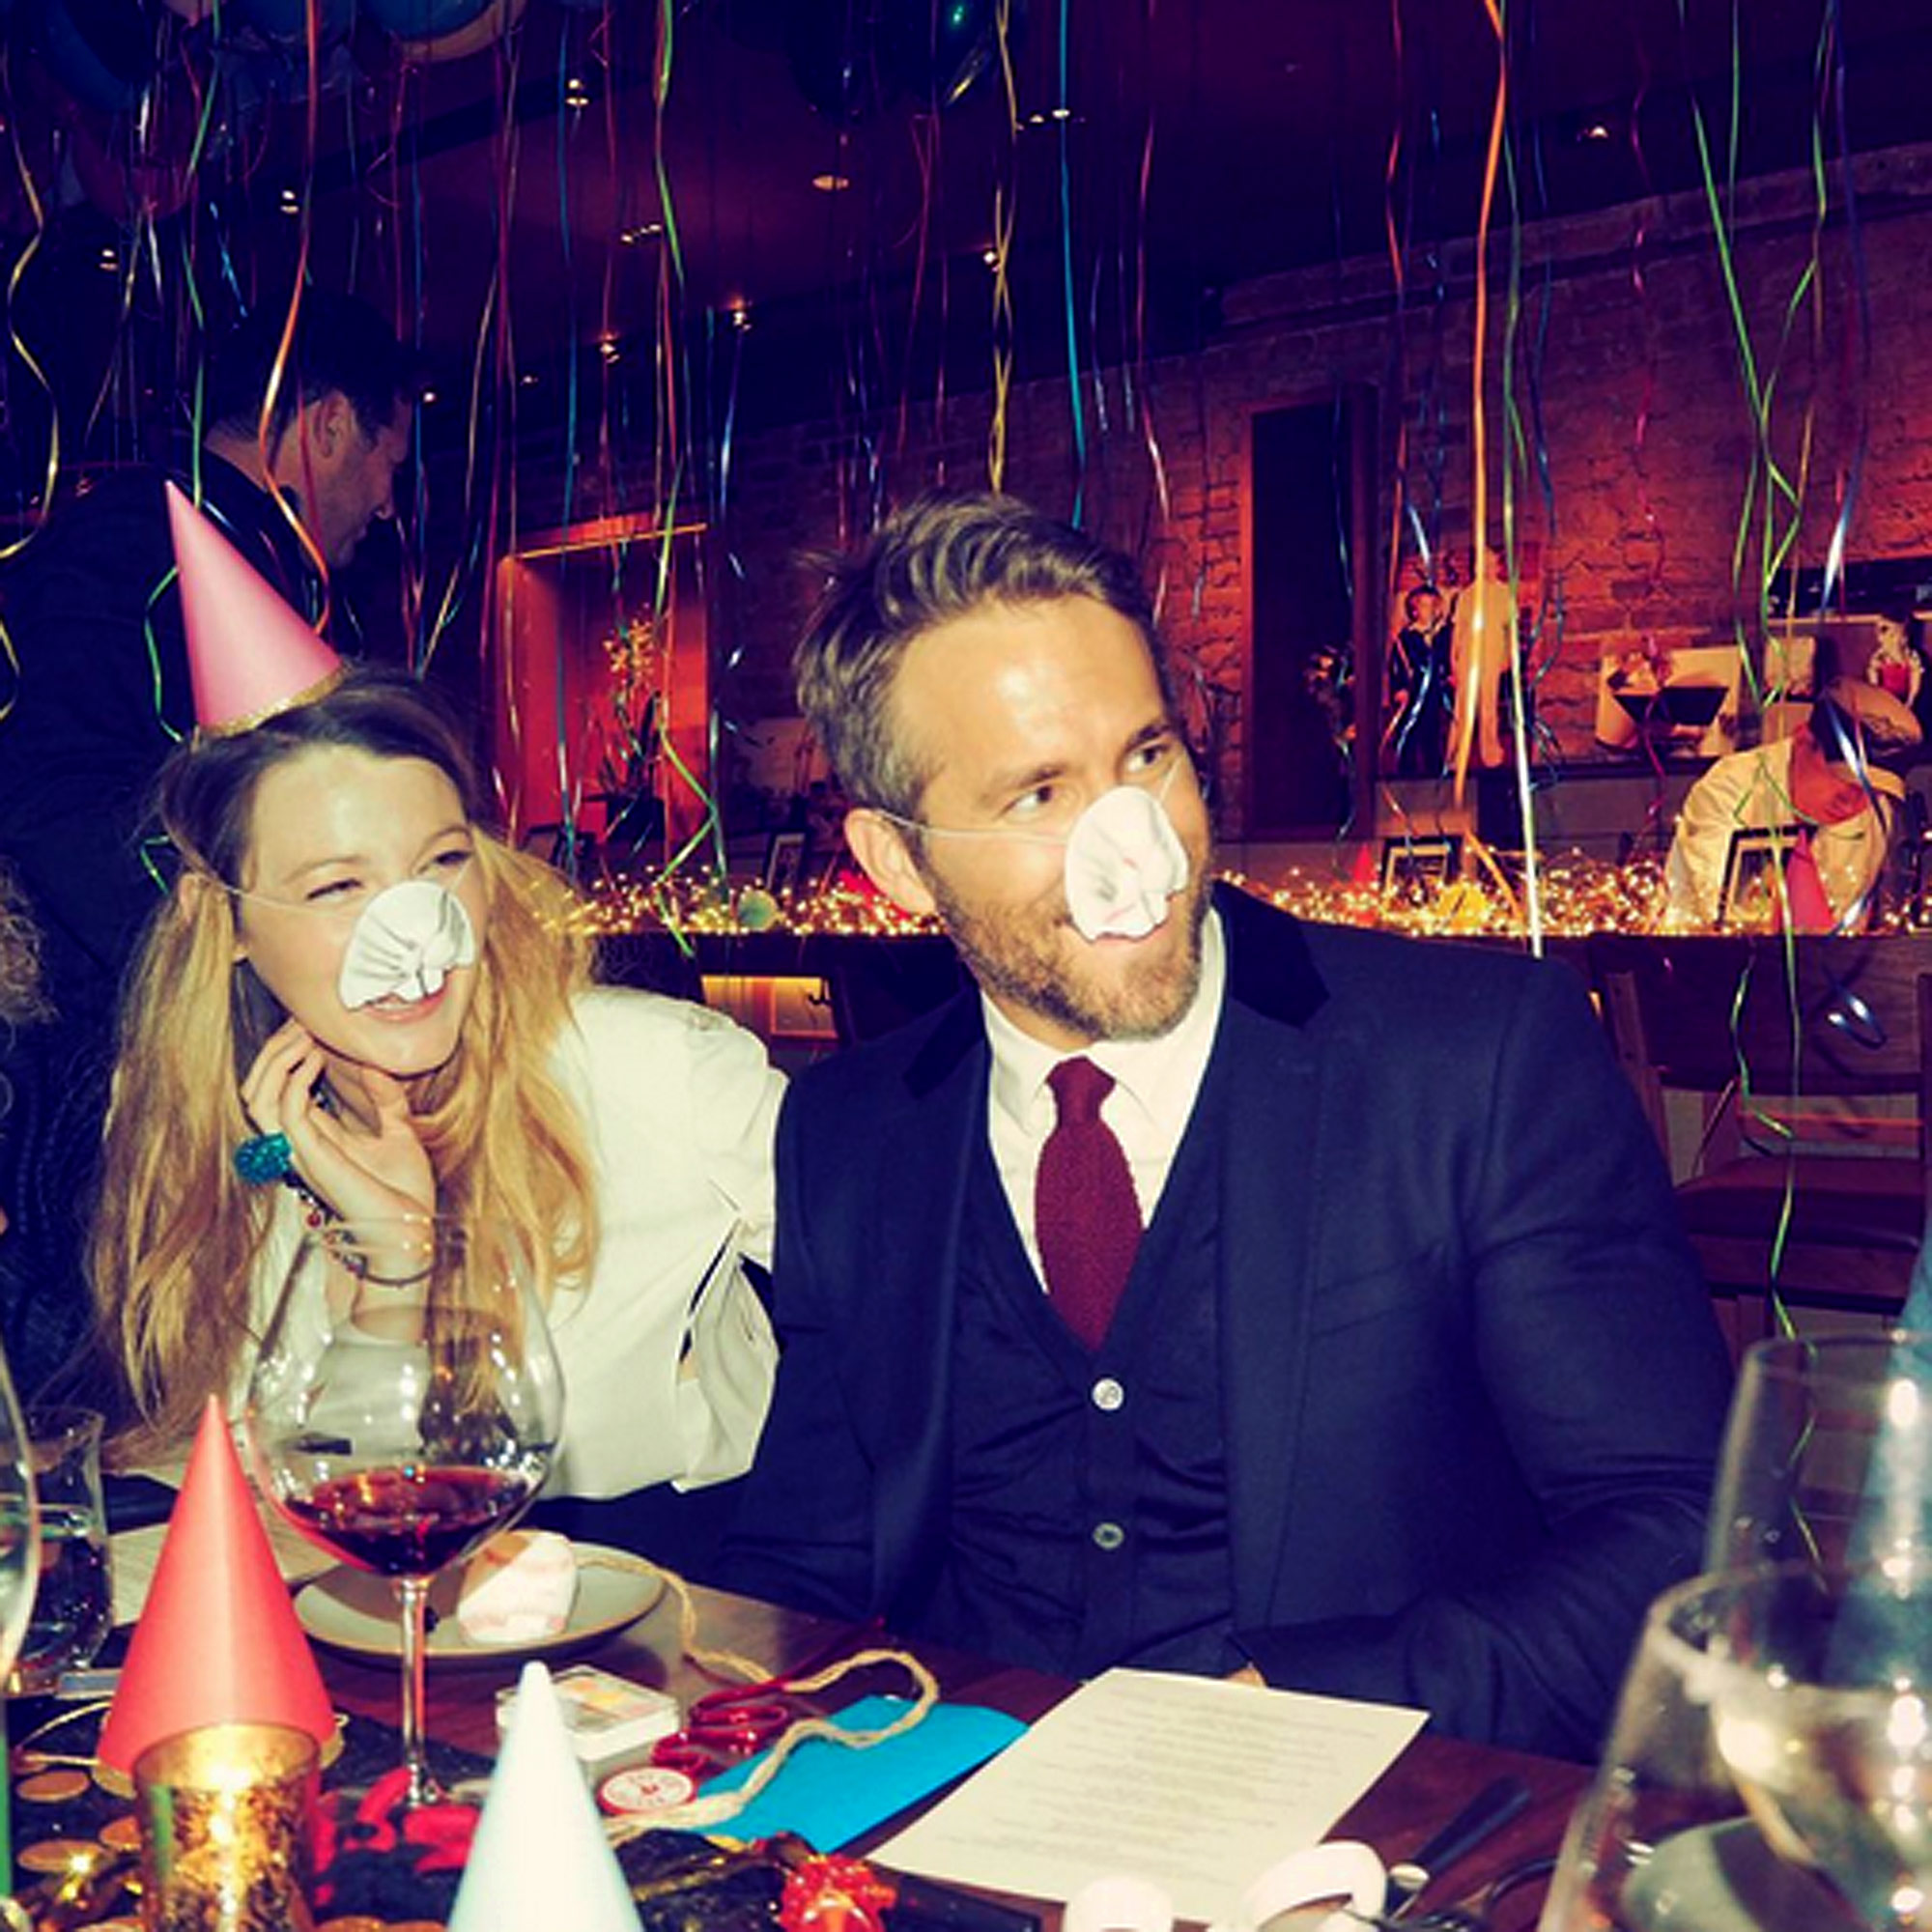 https://www.instagram.com/p/BMApAOSh9Ty/ vancityreynolds Best. Birthday. Everrrrr. Courtesy of my wife, buddy, and international spy, @blakelively. With huge thanks to my favorite restaurant in NYC, @_o_ya_ -- and a special shout out to our children for not ruining everything like they planned. Blake Lively and Ryan Reynolds celebrate his birthday.